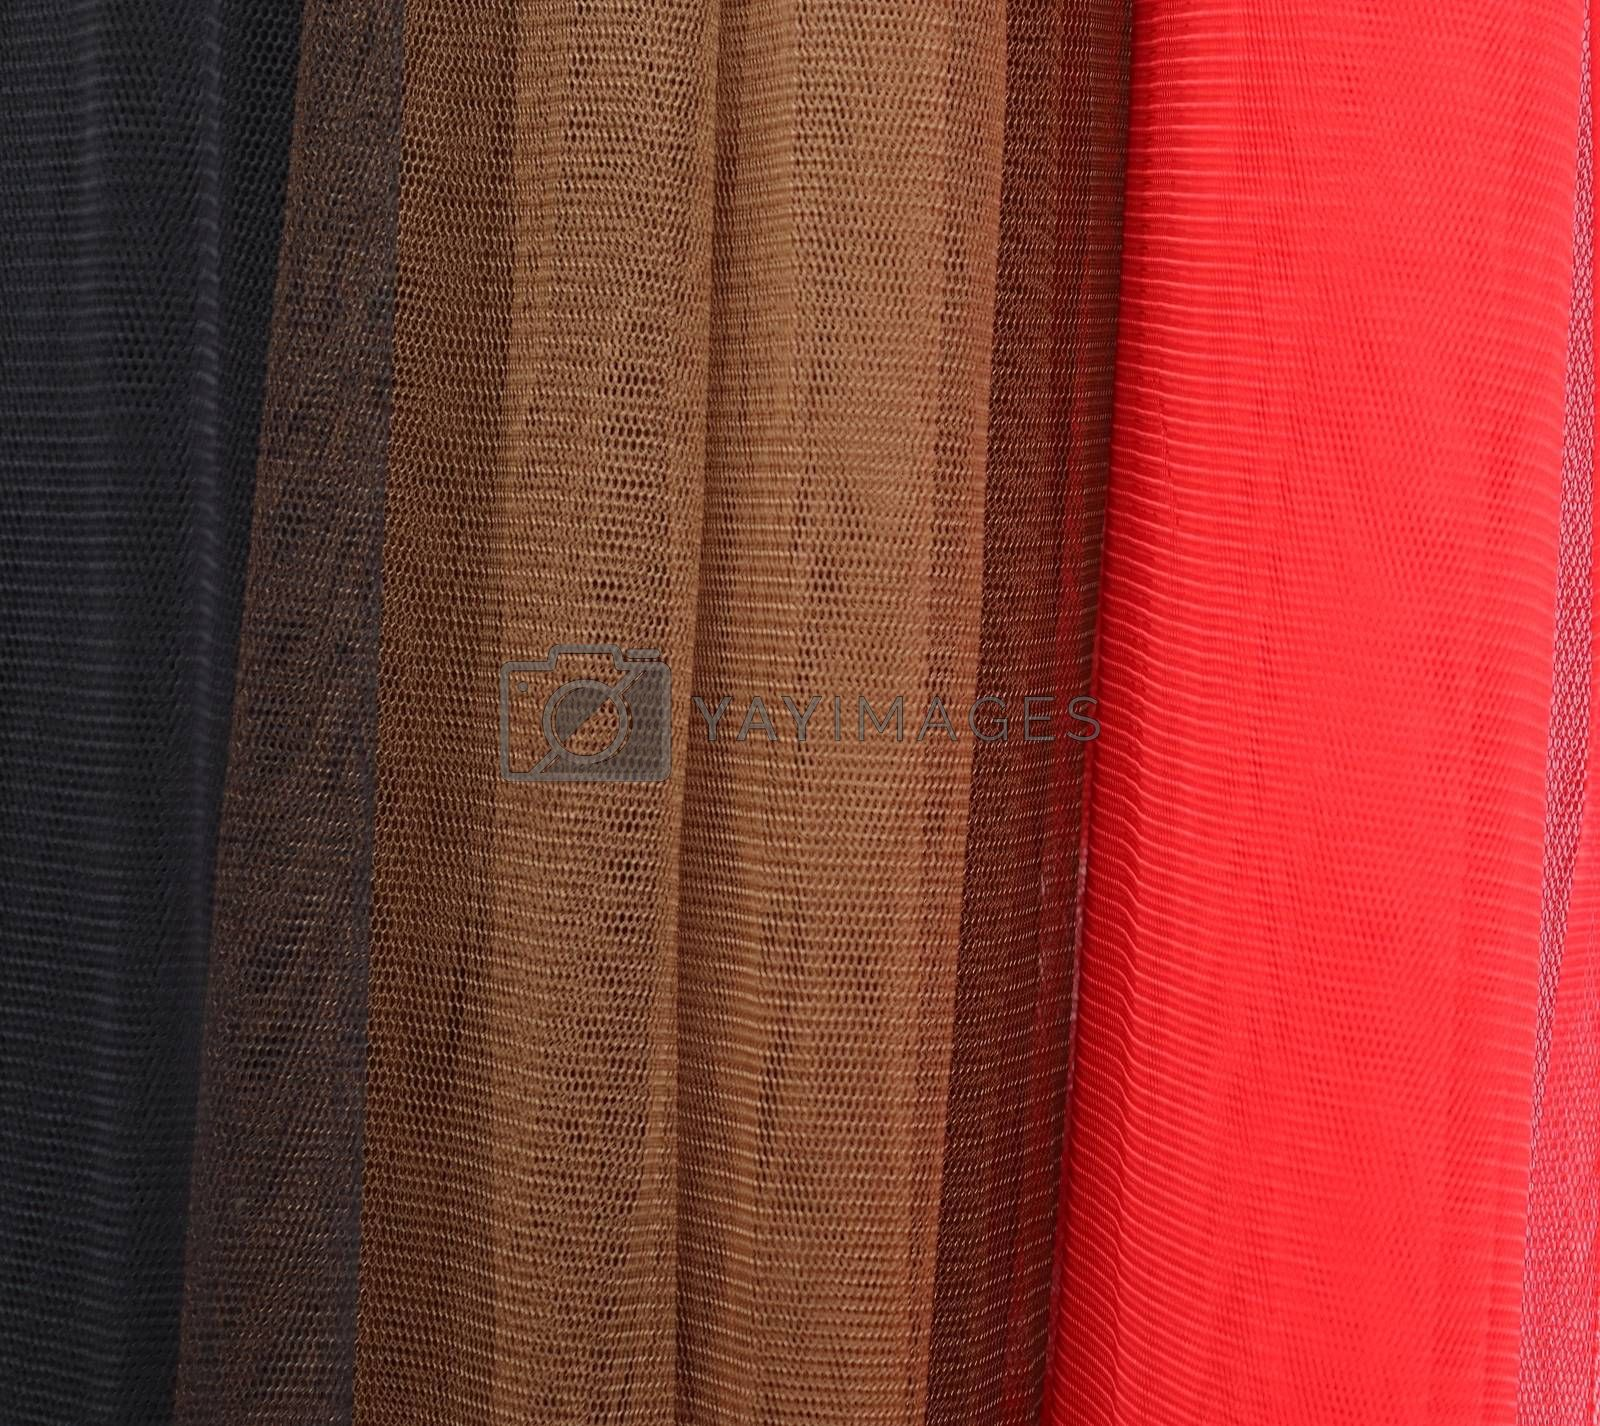 Detailed close up view on samples of cloth and fabrics in different colors found at a fabrics market.